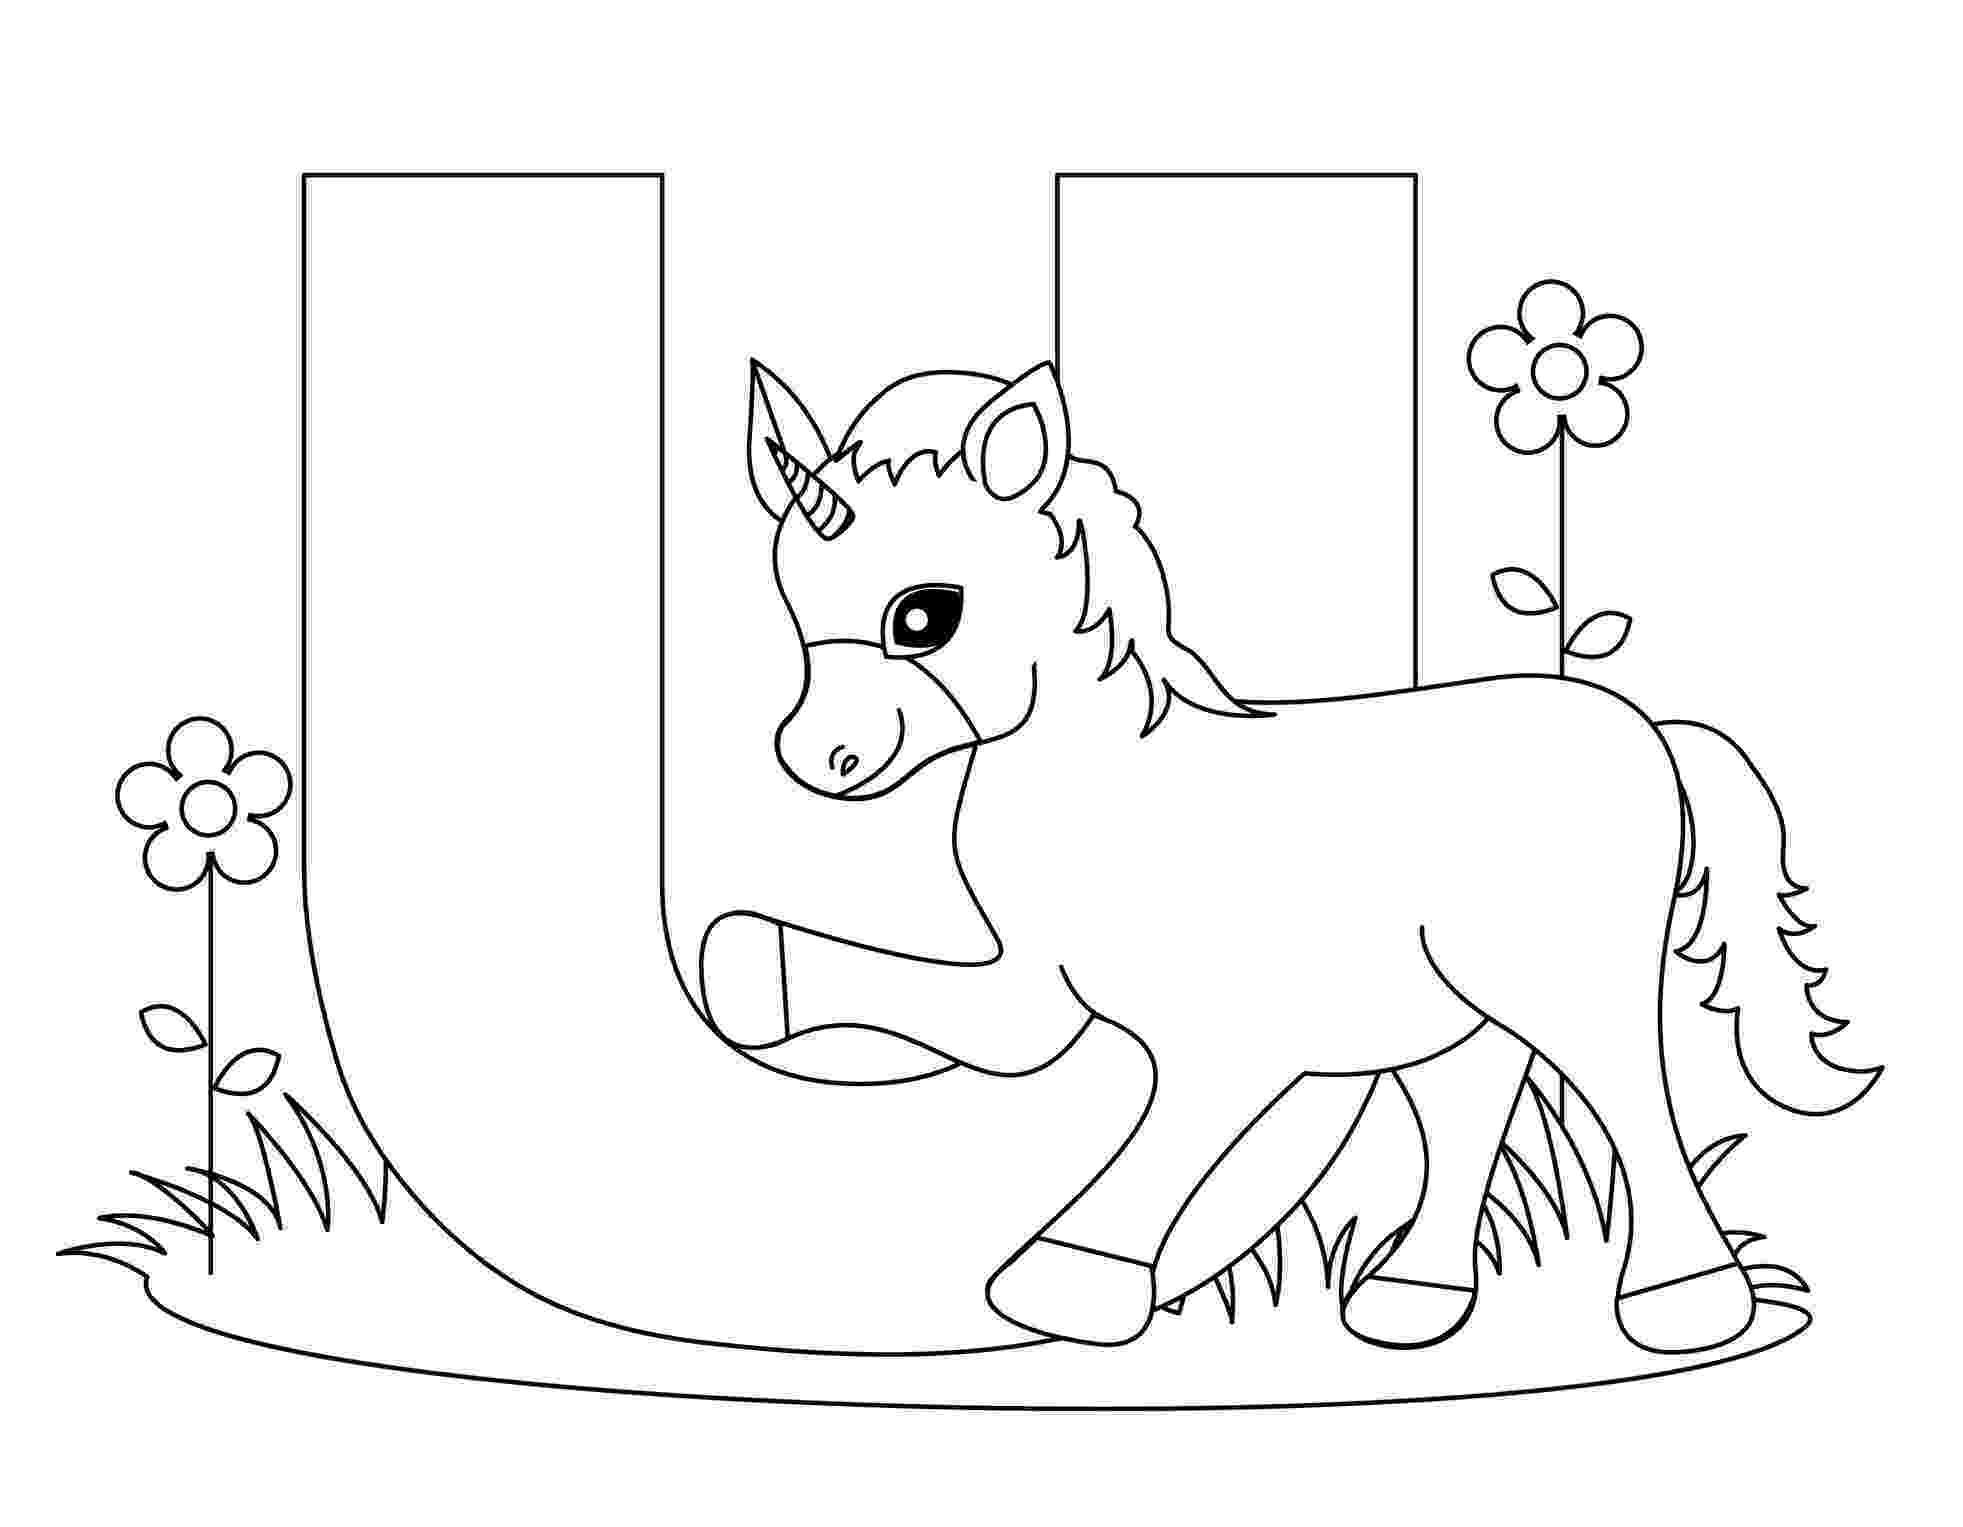 childrens colouring pages alphabet free printable alphabet coloring pages for kids best alphabet pages childrens colouring